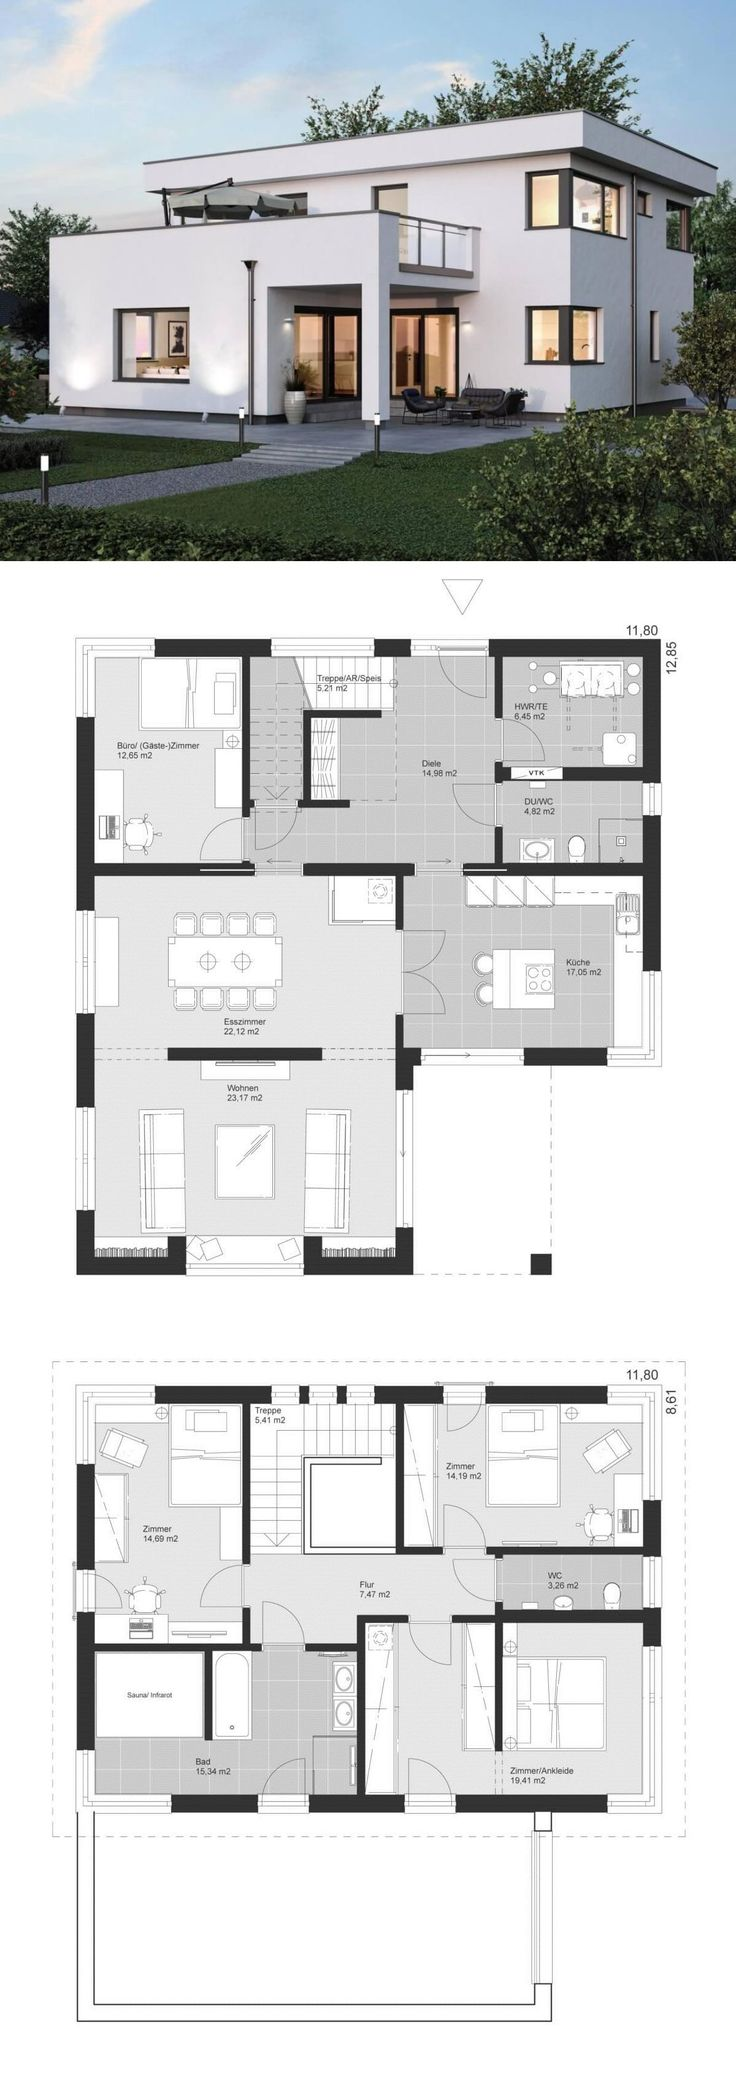 Modern Minimalist Luxury Style Architecture Design House Plans ELK Haus 186 – Dream Home Ideas with Open Floor Layout by ELK Fertighaus – Arquitecture Contemporary European Styles House Plan and Interior with Kitchen Living Room Bathrooms 4 Bedrooms Nursery Kids Entrance Hall – Arquitectura moderna casas planos – HausbauDirekt.de #home #house #houseplan #dreamhome #newhome #homedesign #houseideas #housegoals #construction #architecture #architect #arquitectura #hausbaudirekt